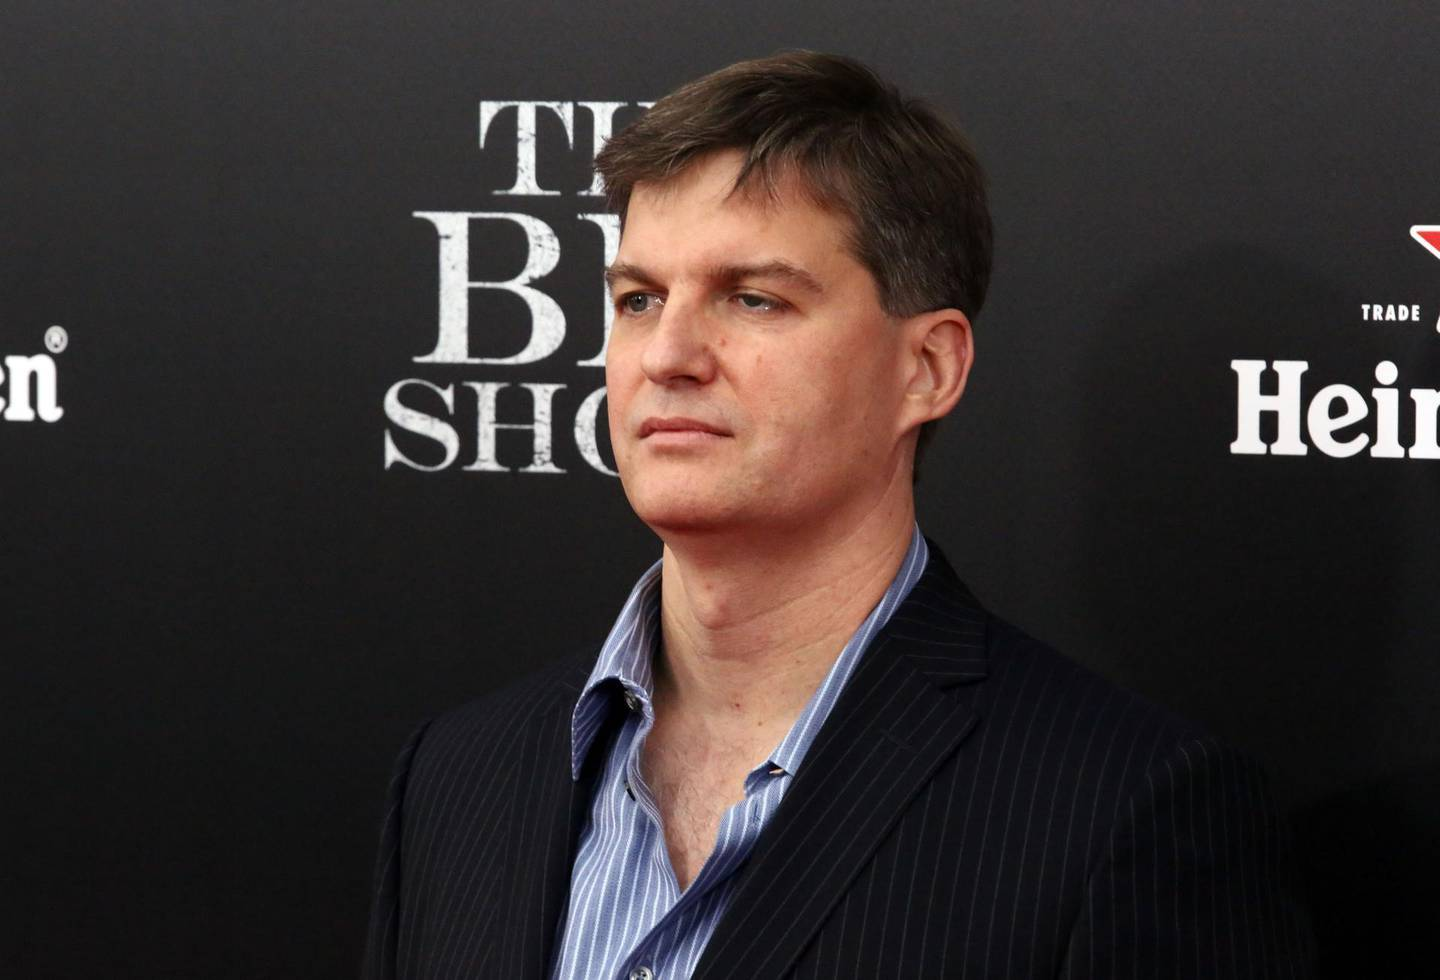 """NEW YORK, NY - NOVEMBER 23: Michael Burry attends """"The Big Short"""" New York screening Ziegfeld Theater on November 23, 2015 in New York City.   Astrid Stawiarz/Getty Images/AFP"""